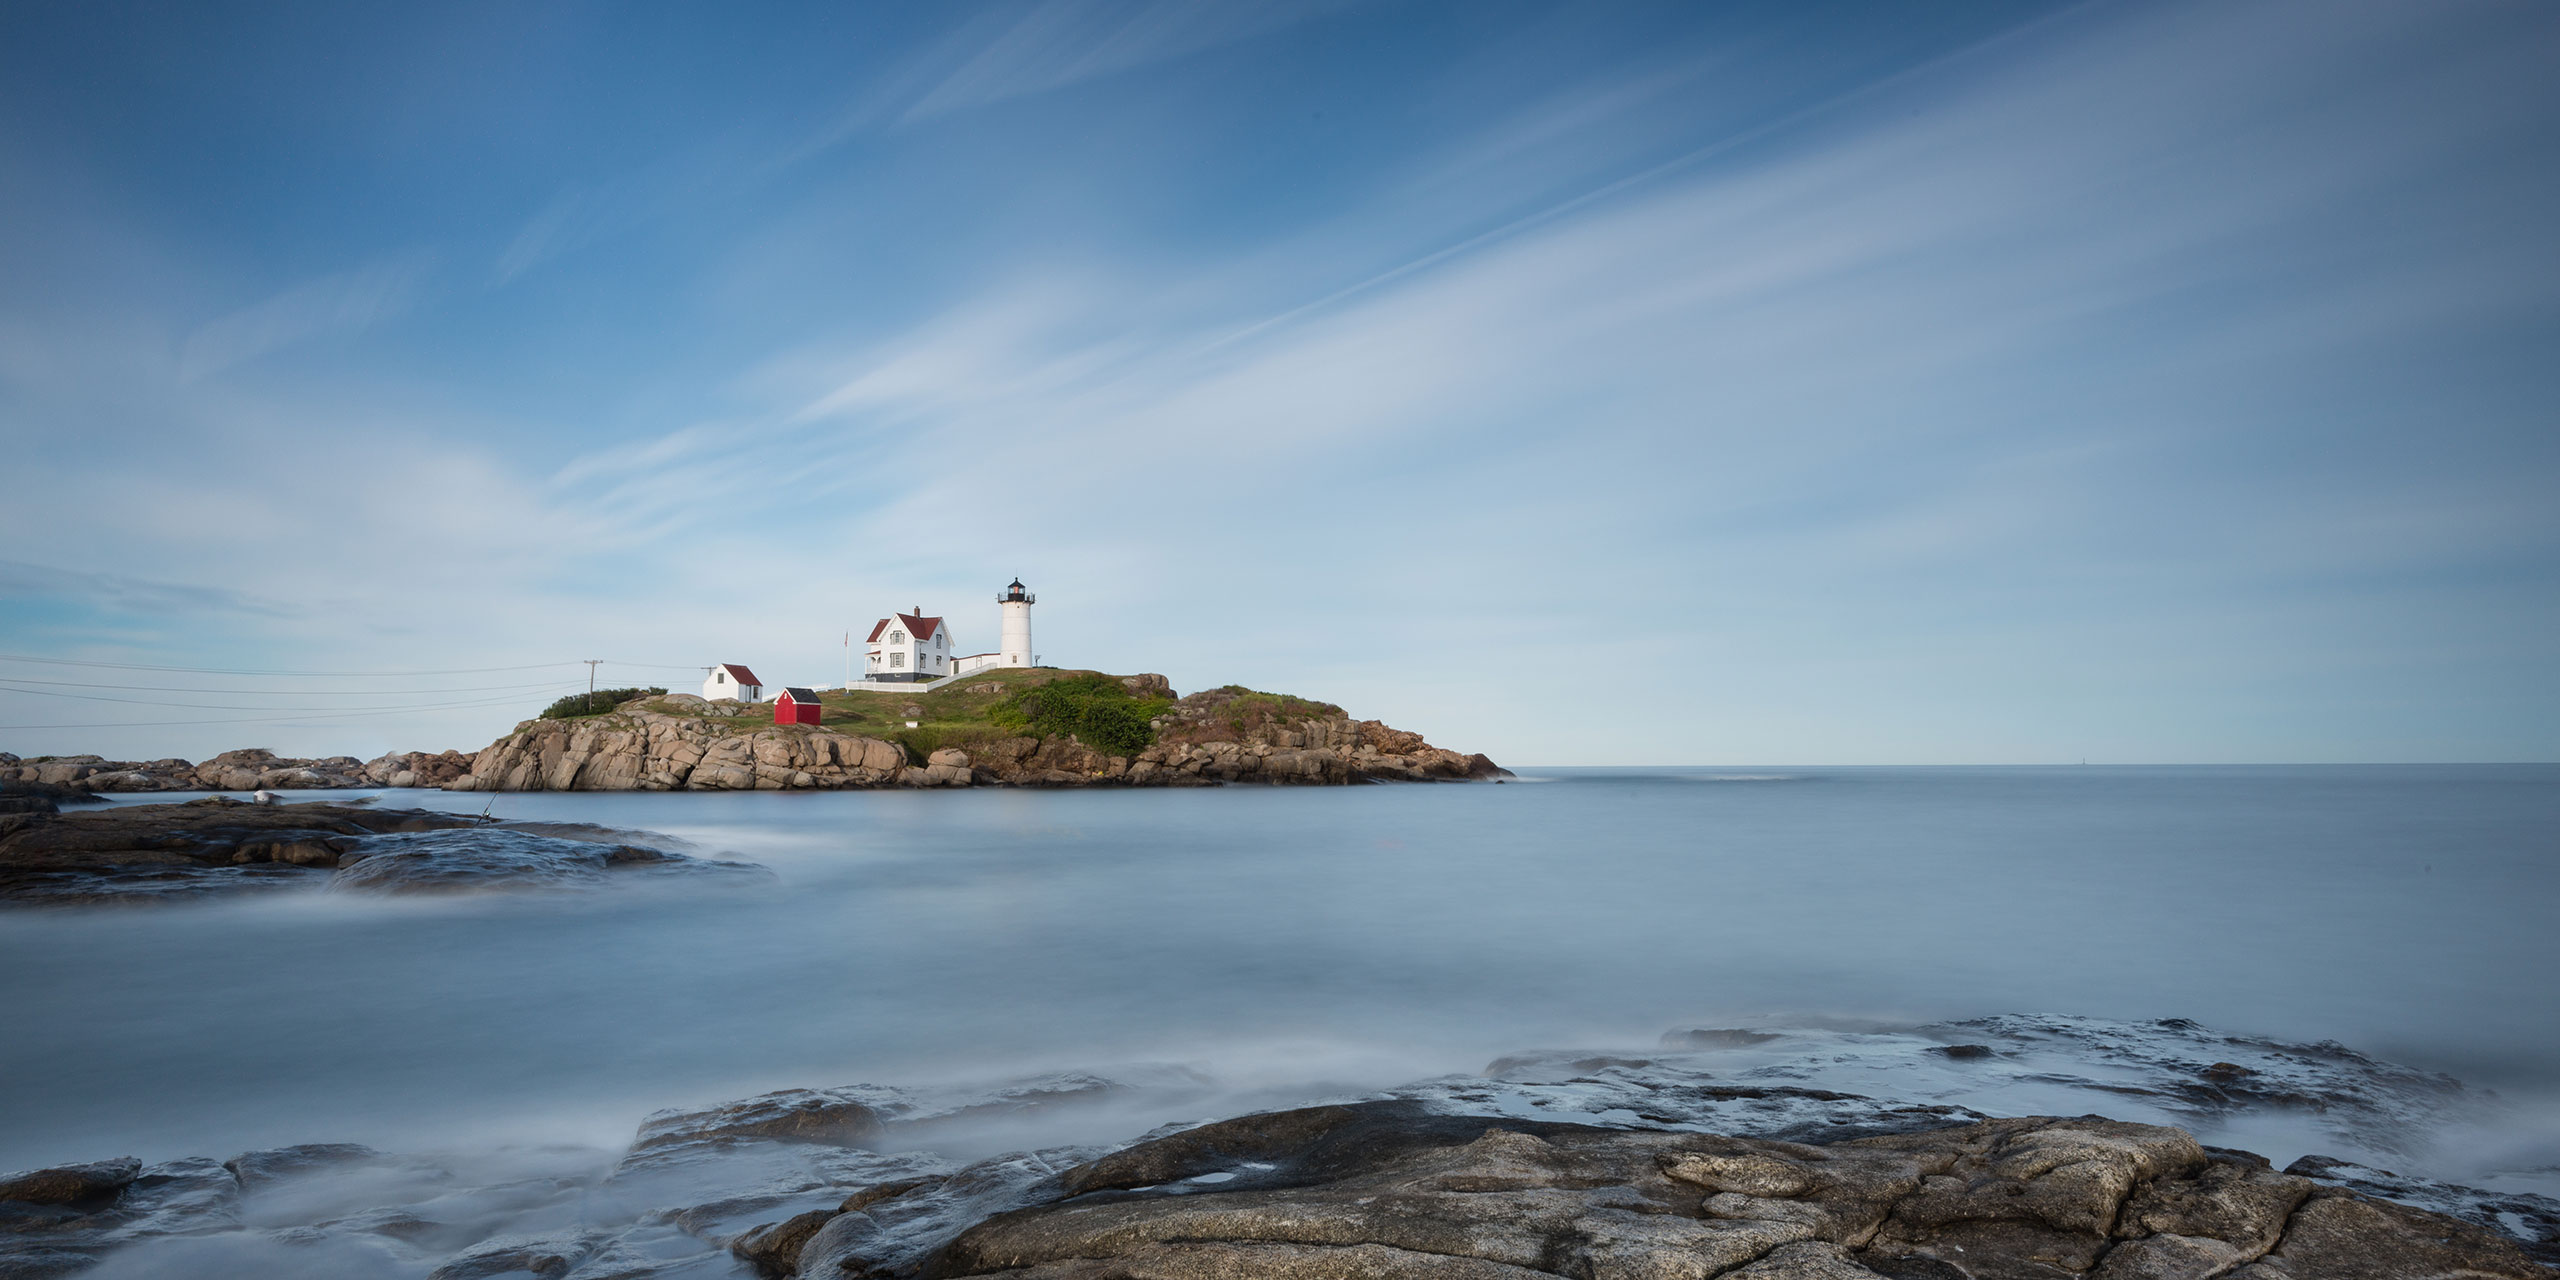 Nubble Light at Cape Neddick; Courtesy of JKom/Shutterstock.com